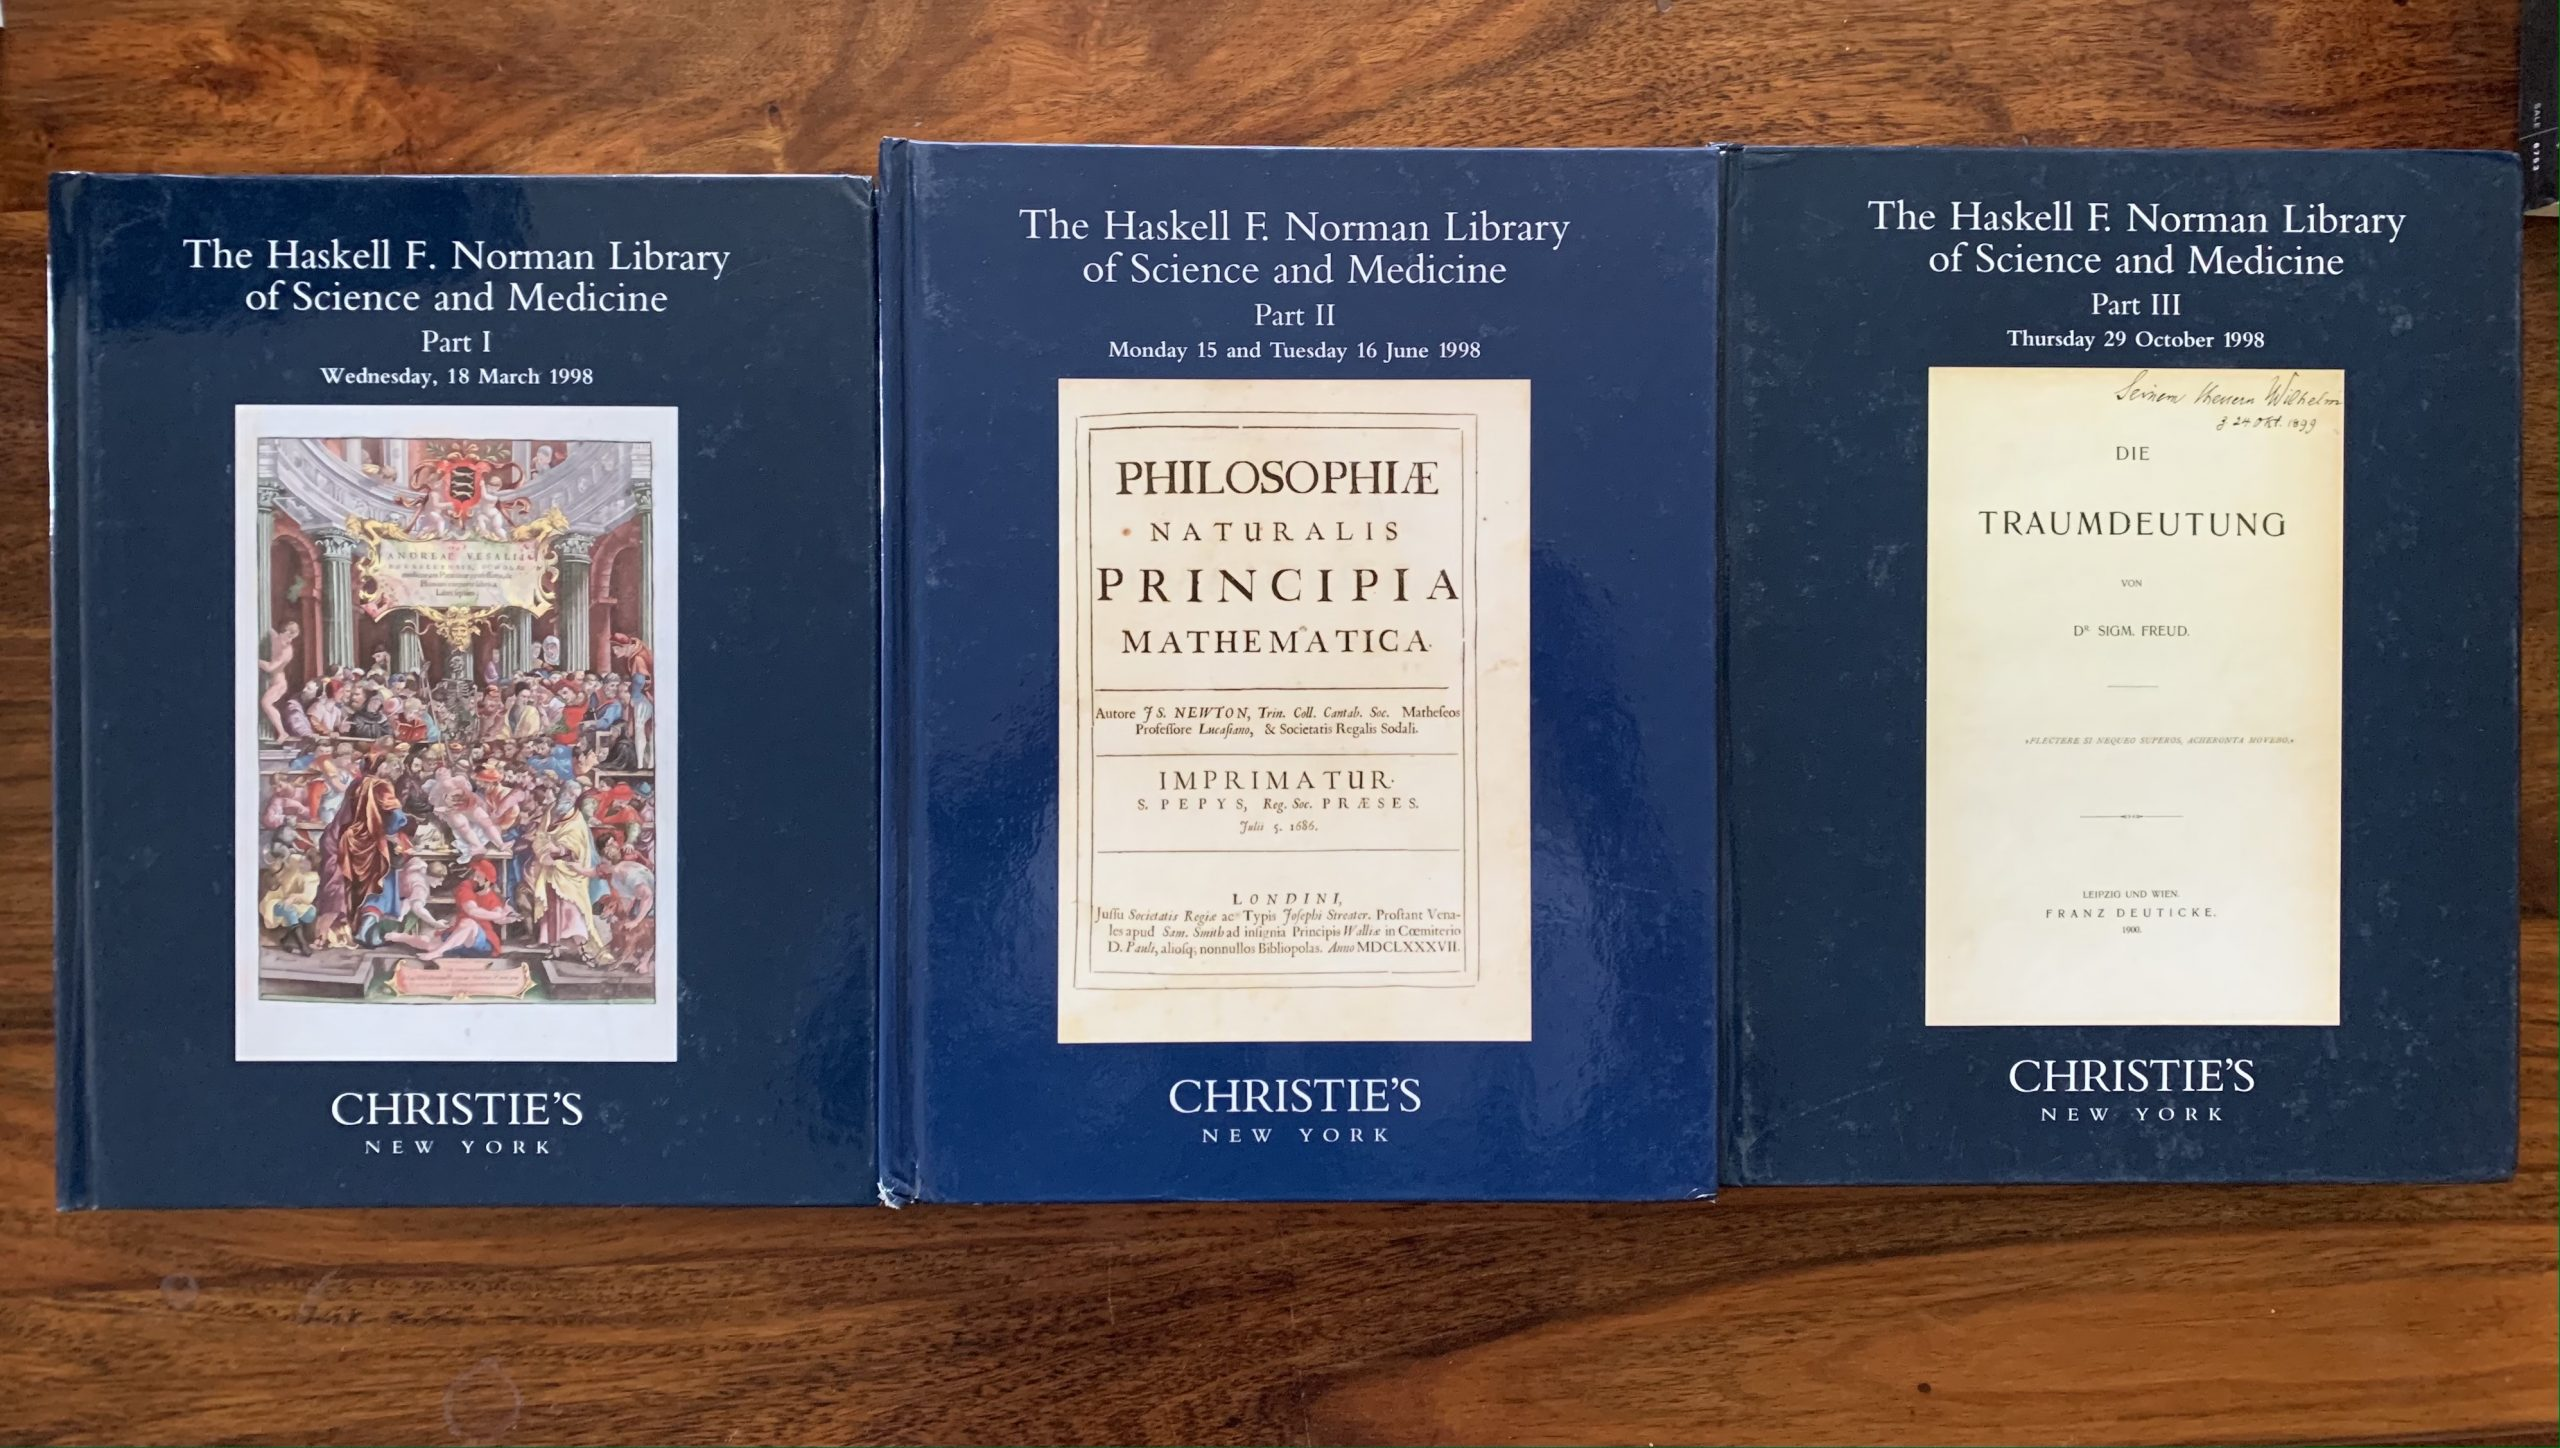 Christie's. The Haskell F. Norman Library of Science and Medicine